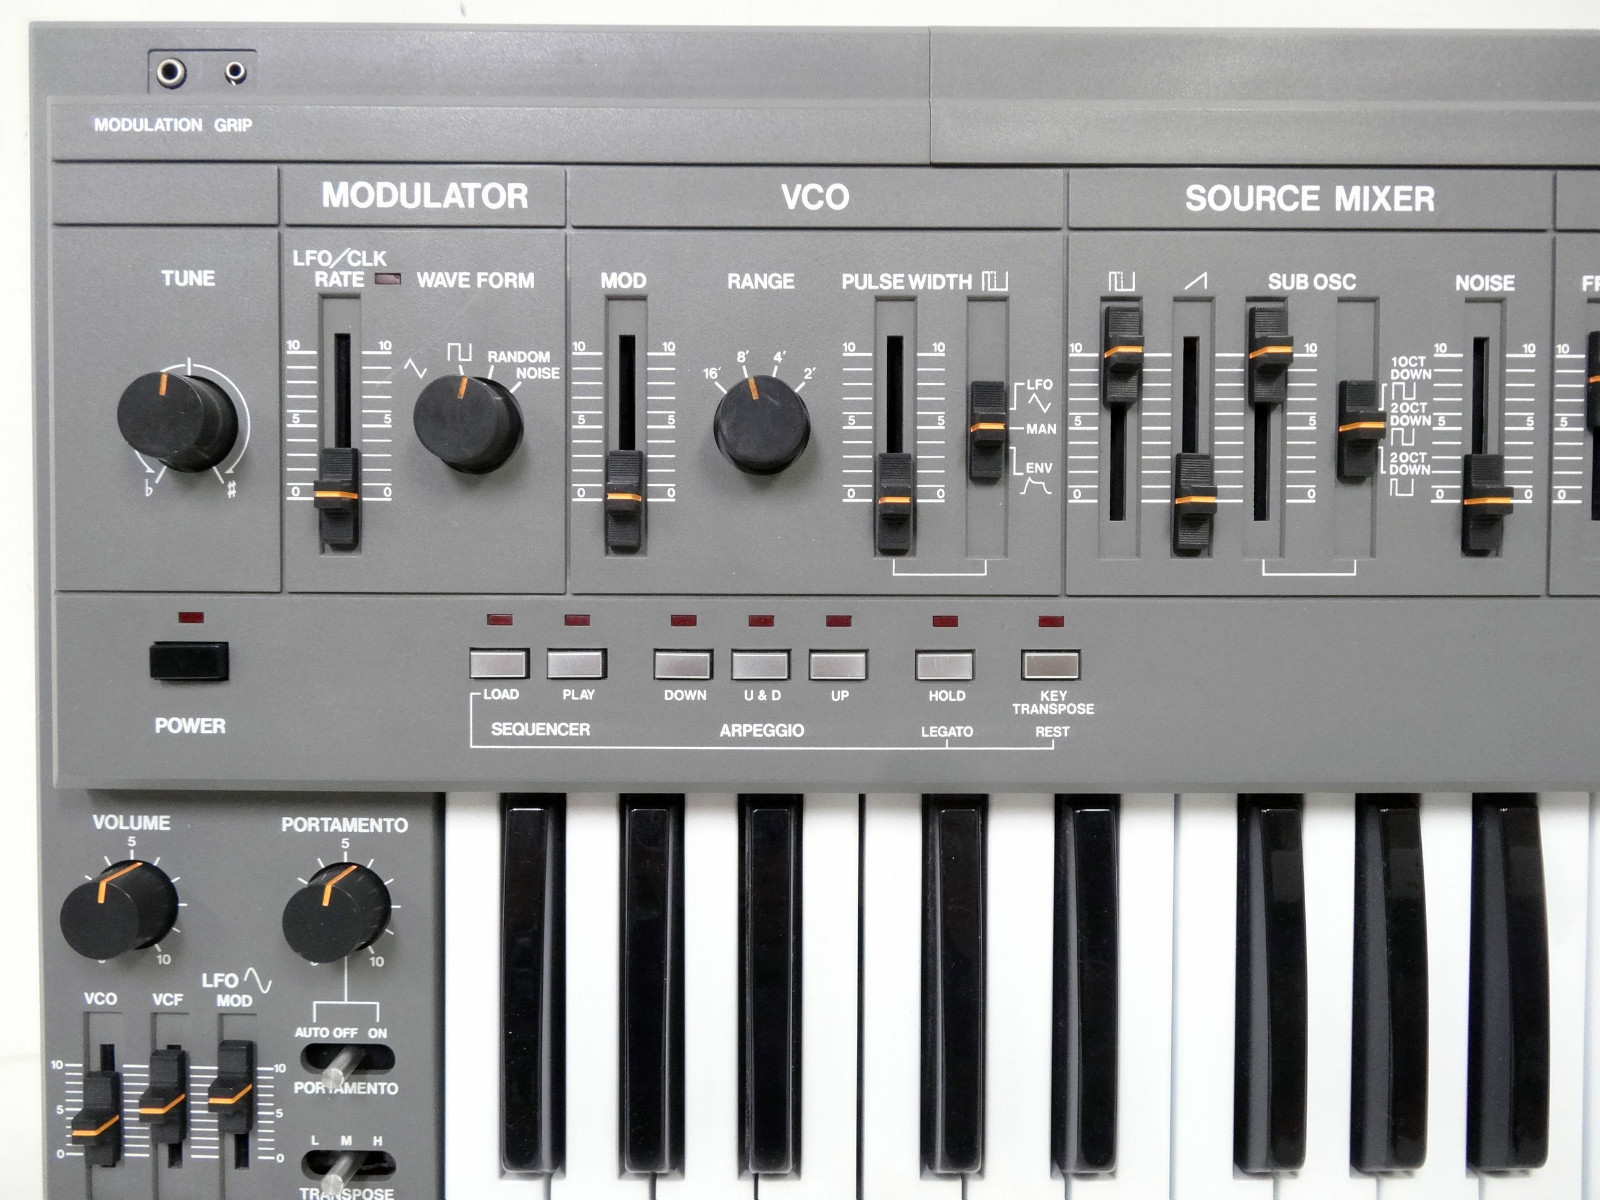 Matrixsynth Friday March 22 2013 Diabolical Devices Casio Sk1 Circuit Bent Sampling Fun Via This Auction